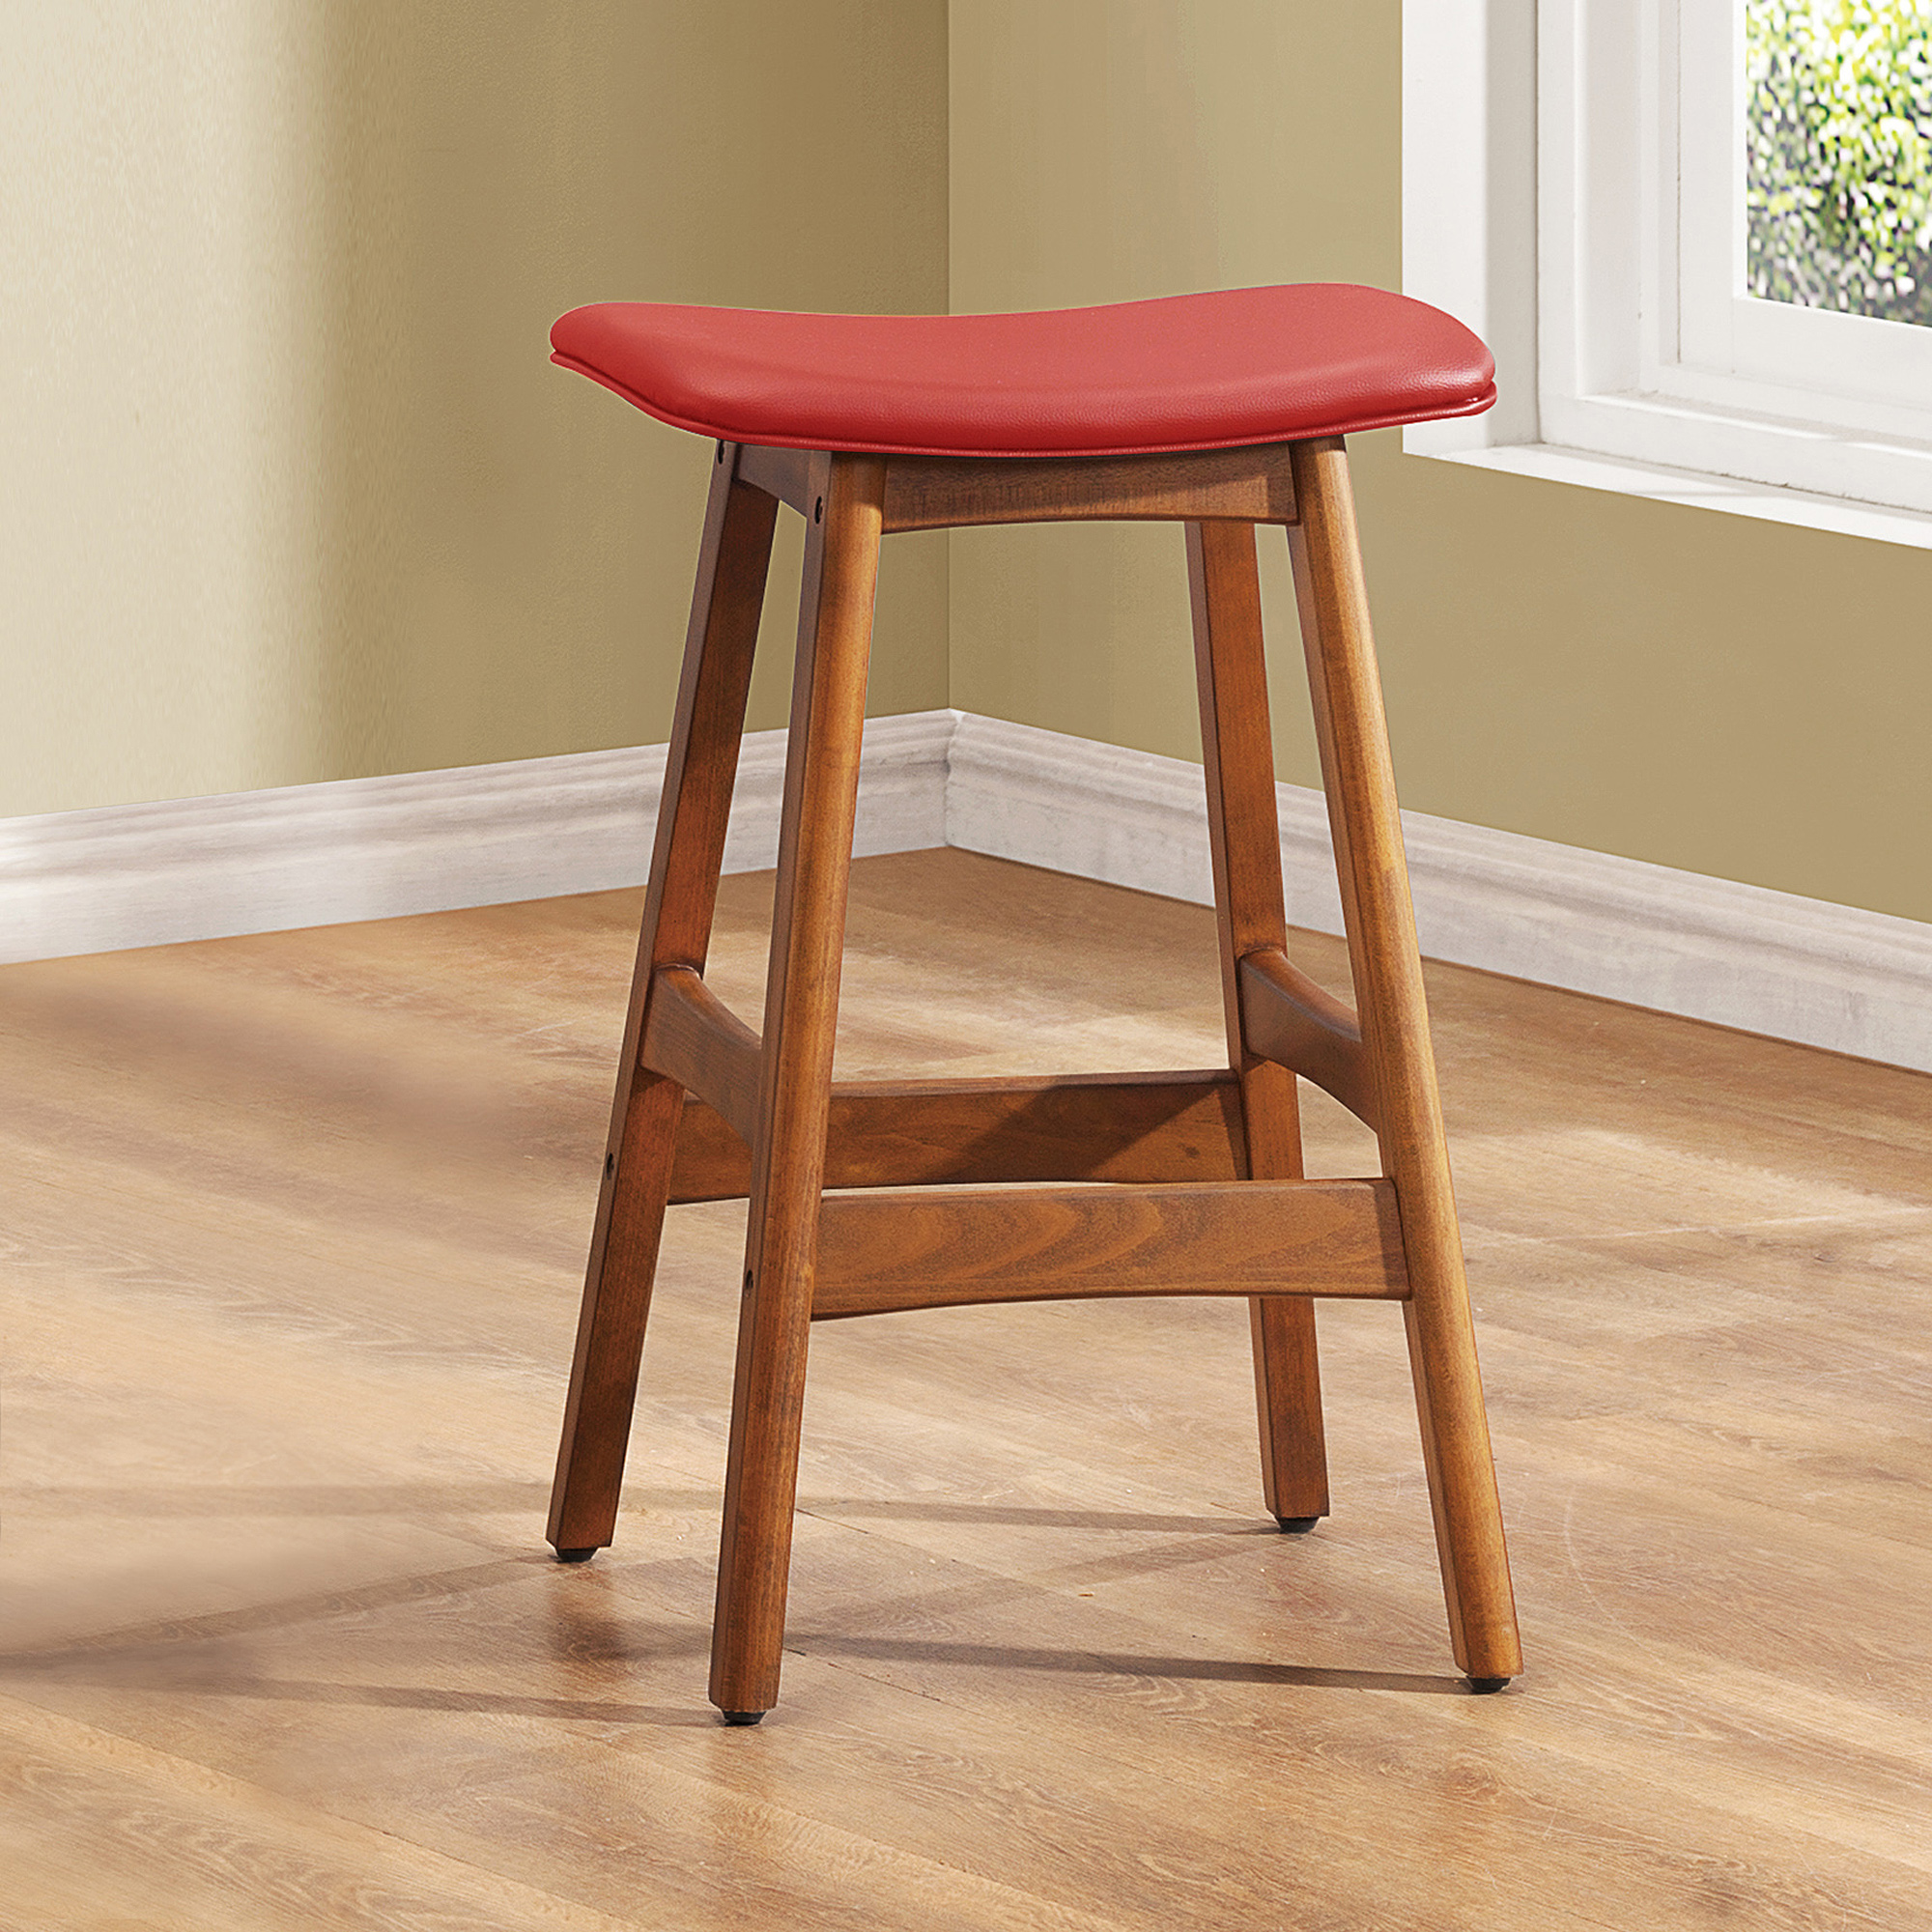 "Red Faux Leather Beech Wood 24"" Counter-Height Stools, Set of 2, Brown"